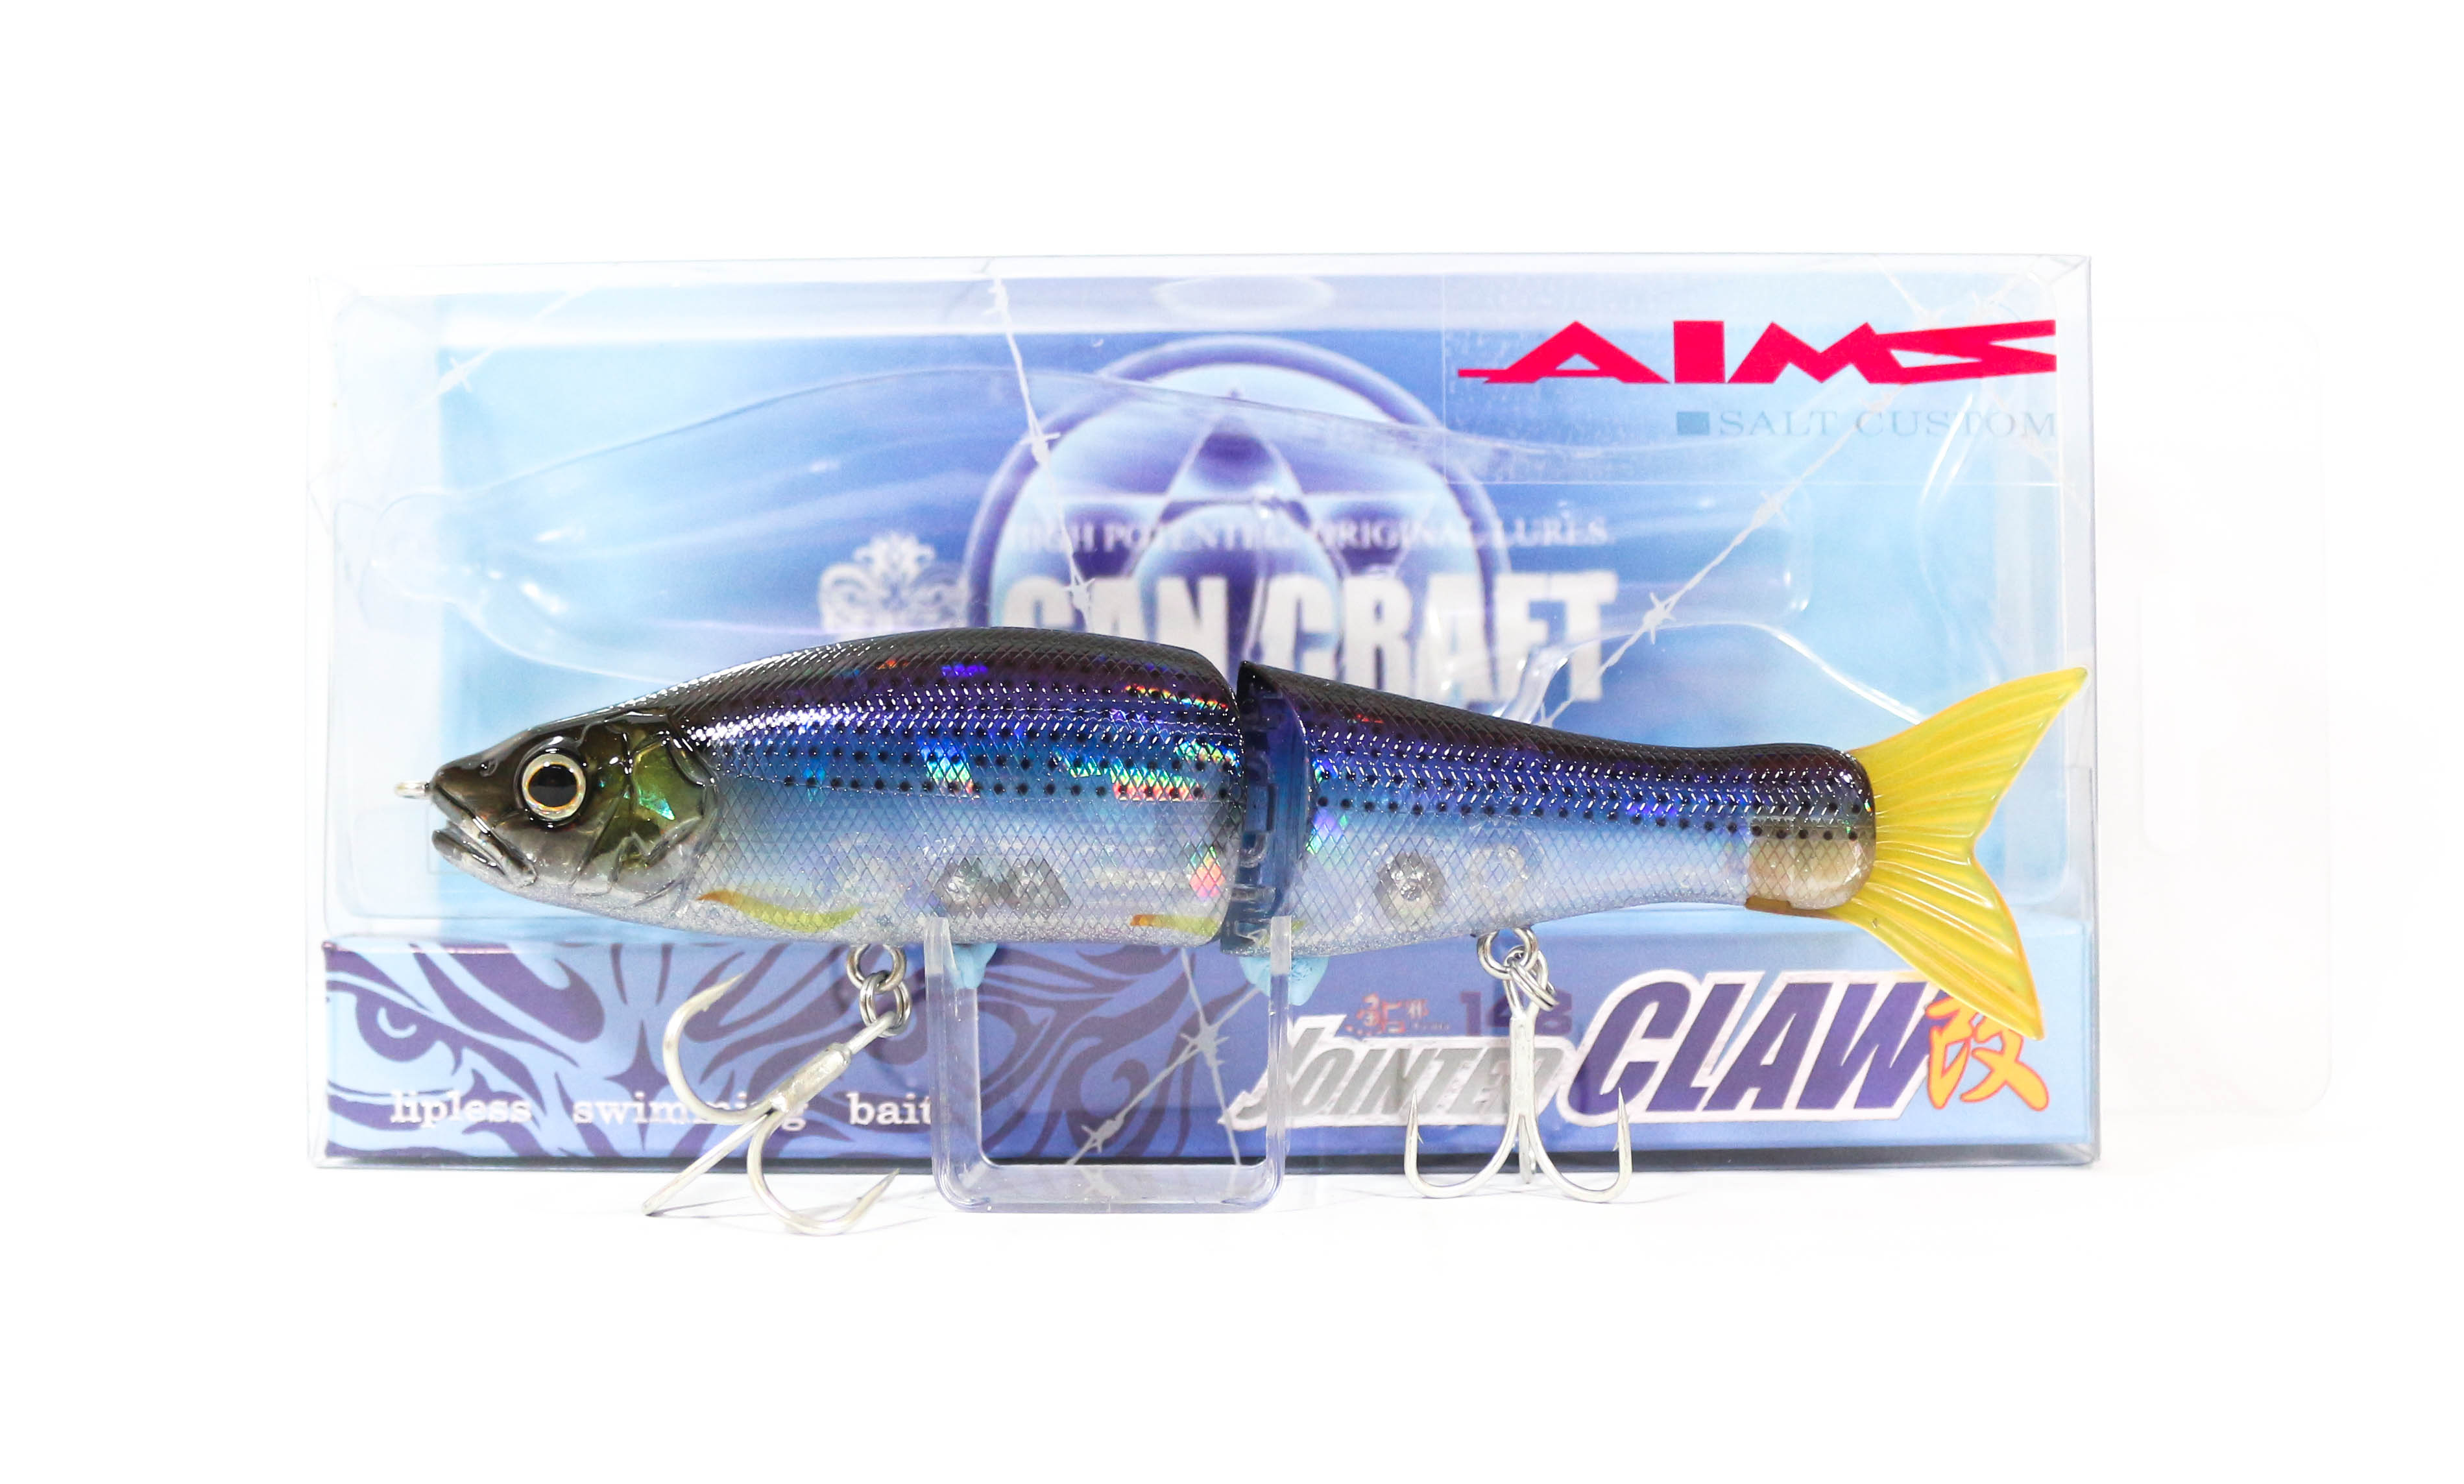 Gan Craft Jointed Claw 148S Salt Floating Jointed Lure AS-14 (0144)